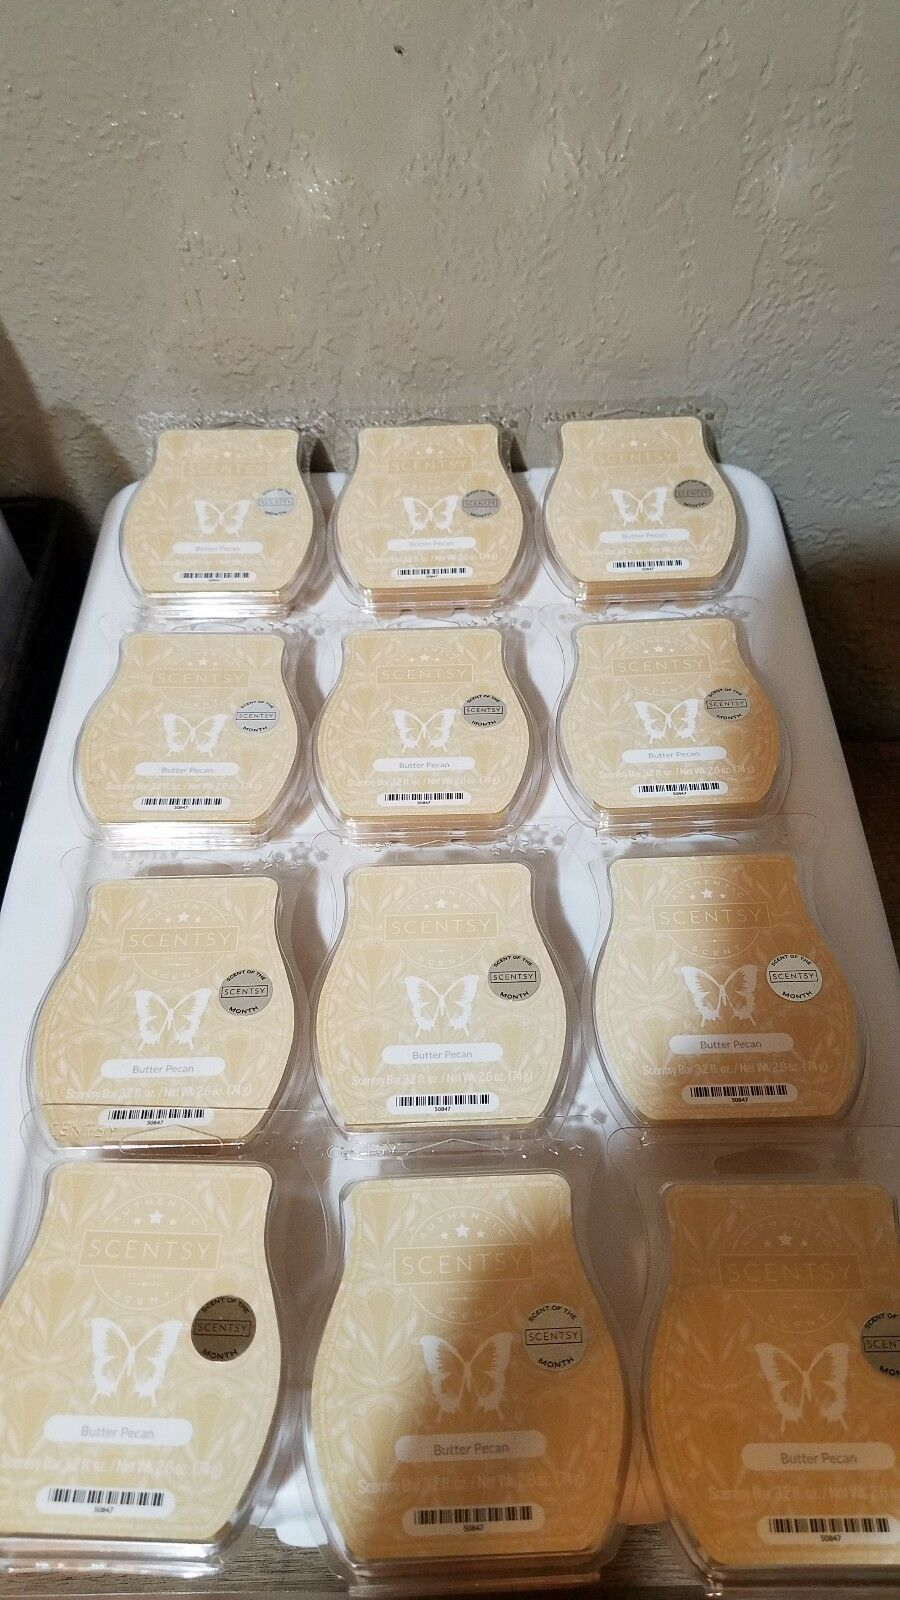 HUGE SCENTSY BARS BBMB LOT OF 12 BUTTER PECAN  BARS -FREE SHIPPING PRIORITY